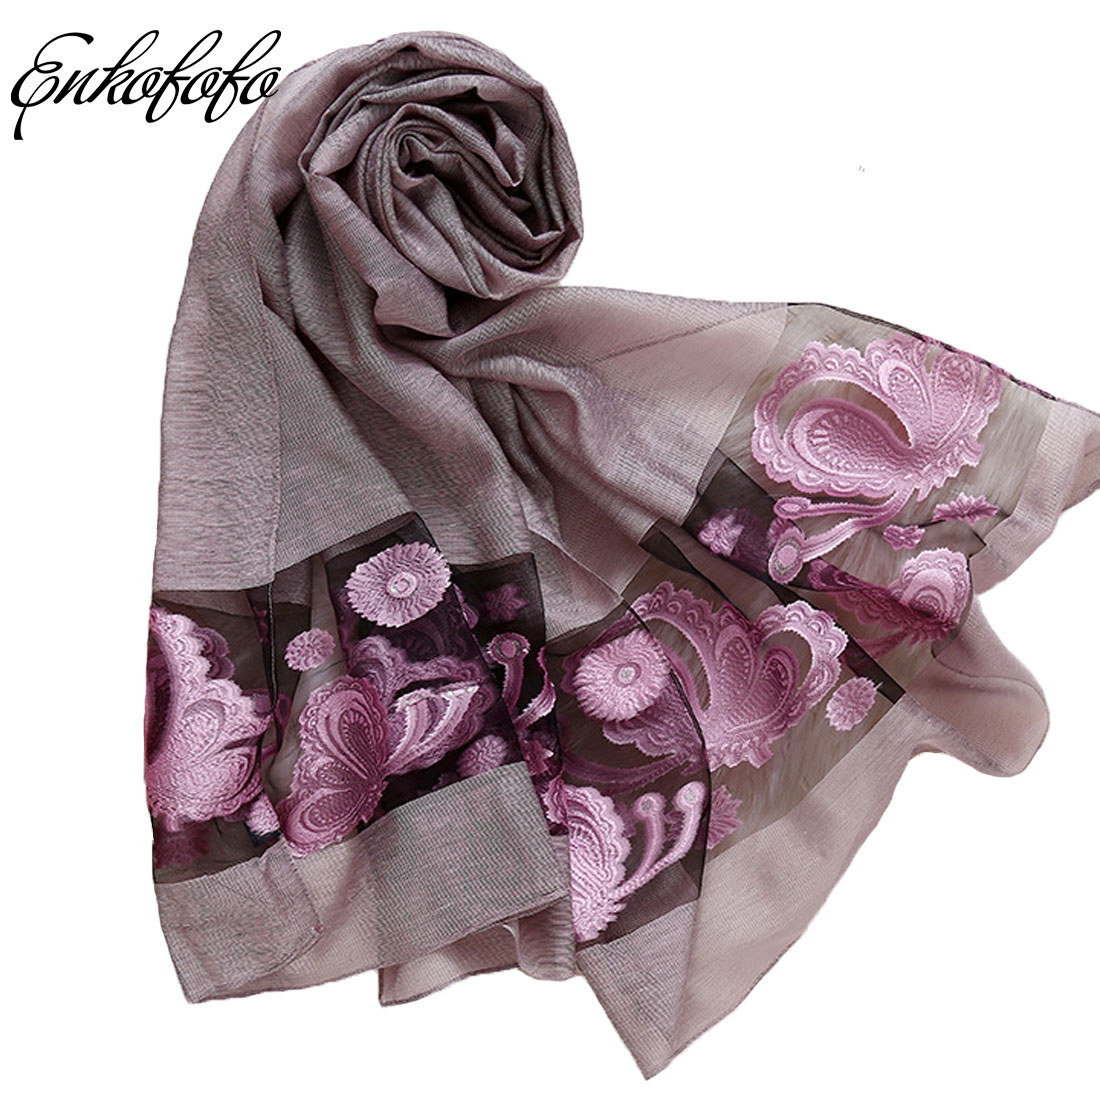 2018 New Fashion Warm Women Scarf Long Pure Silk Scarves Female Wraps Spring Autumn Embroidery Floral Girl Shawls Blanket Scarf